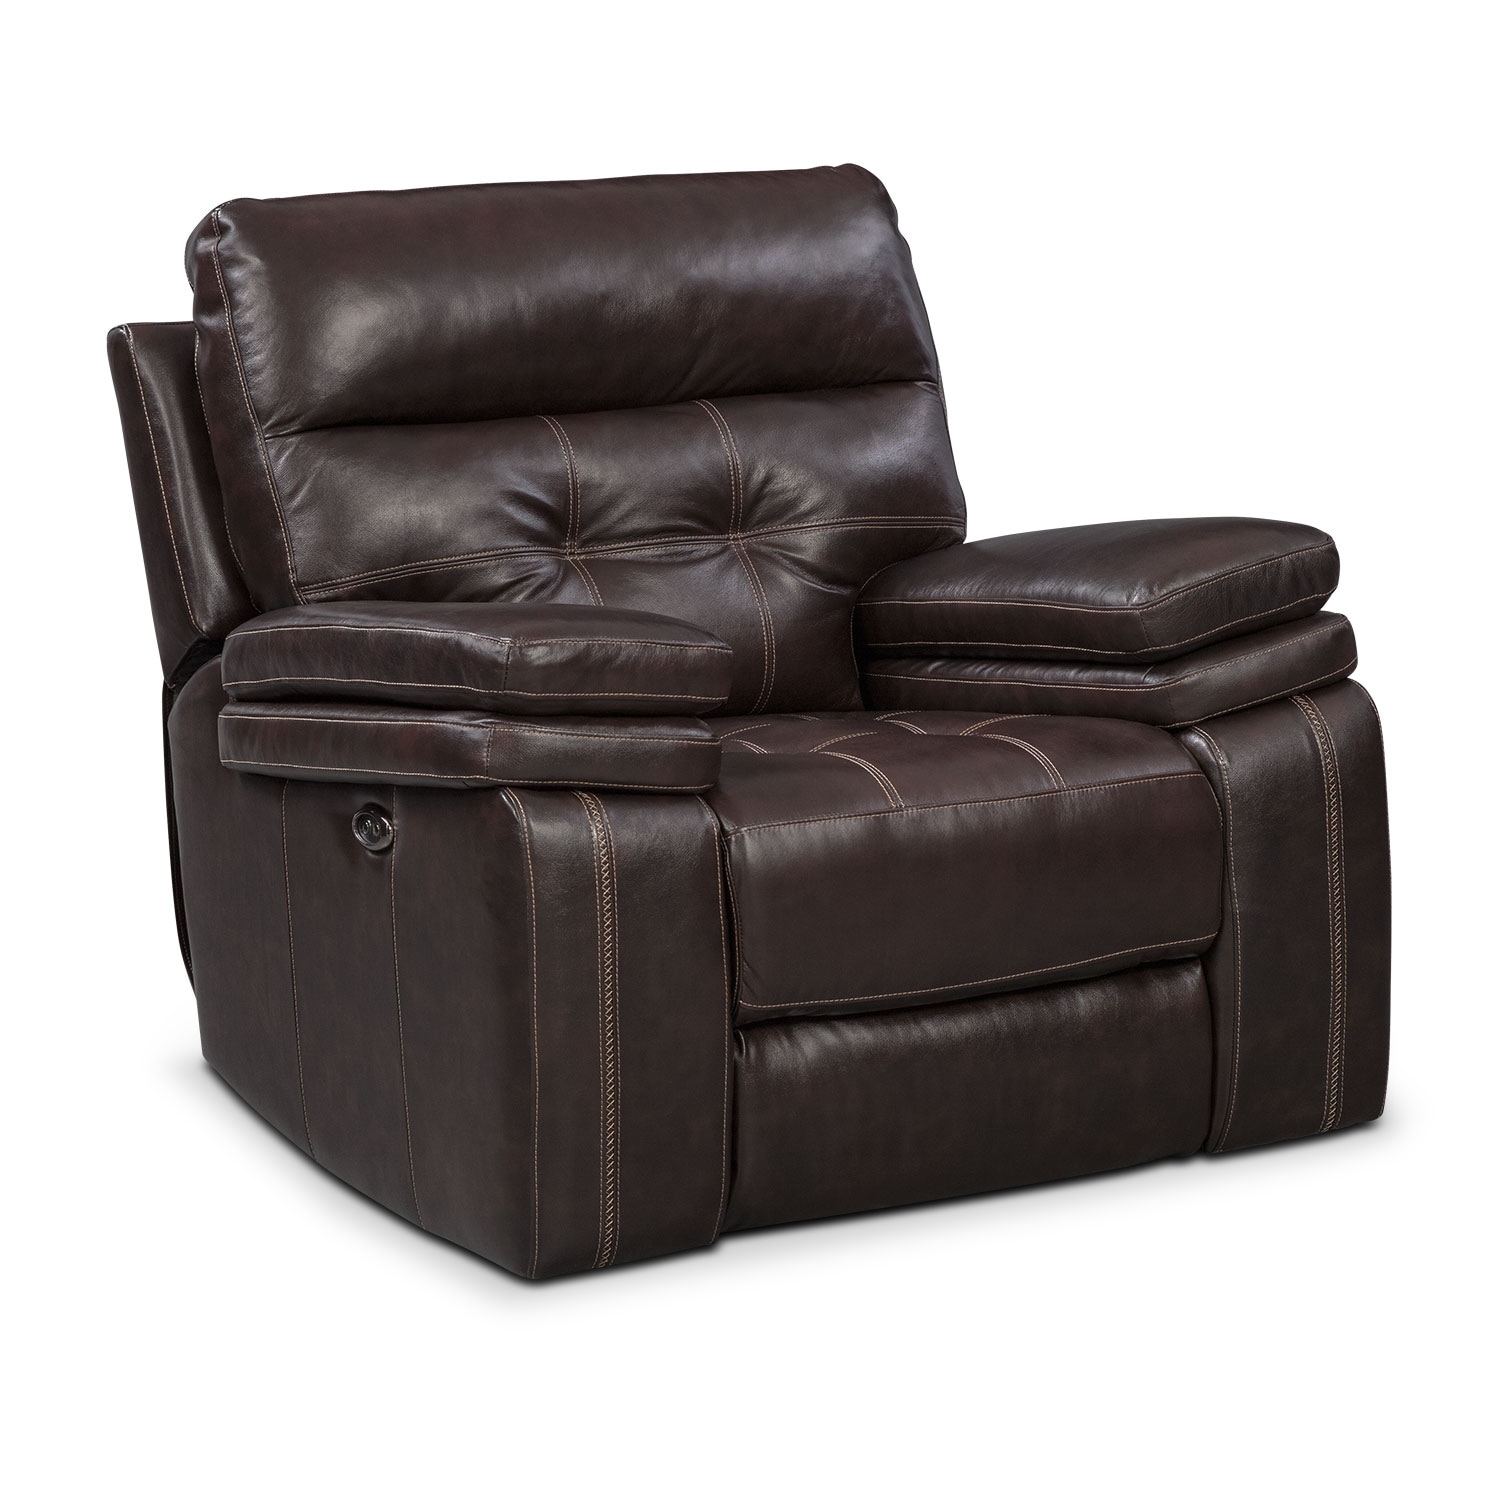 [Brisco Brown Power Glider Recliner]